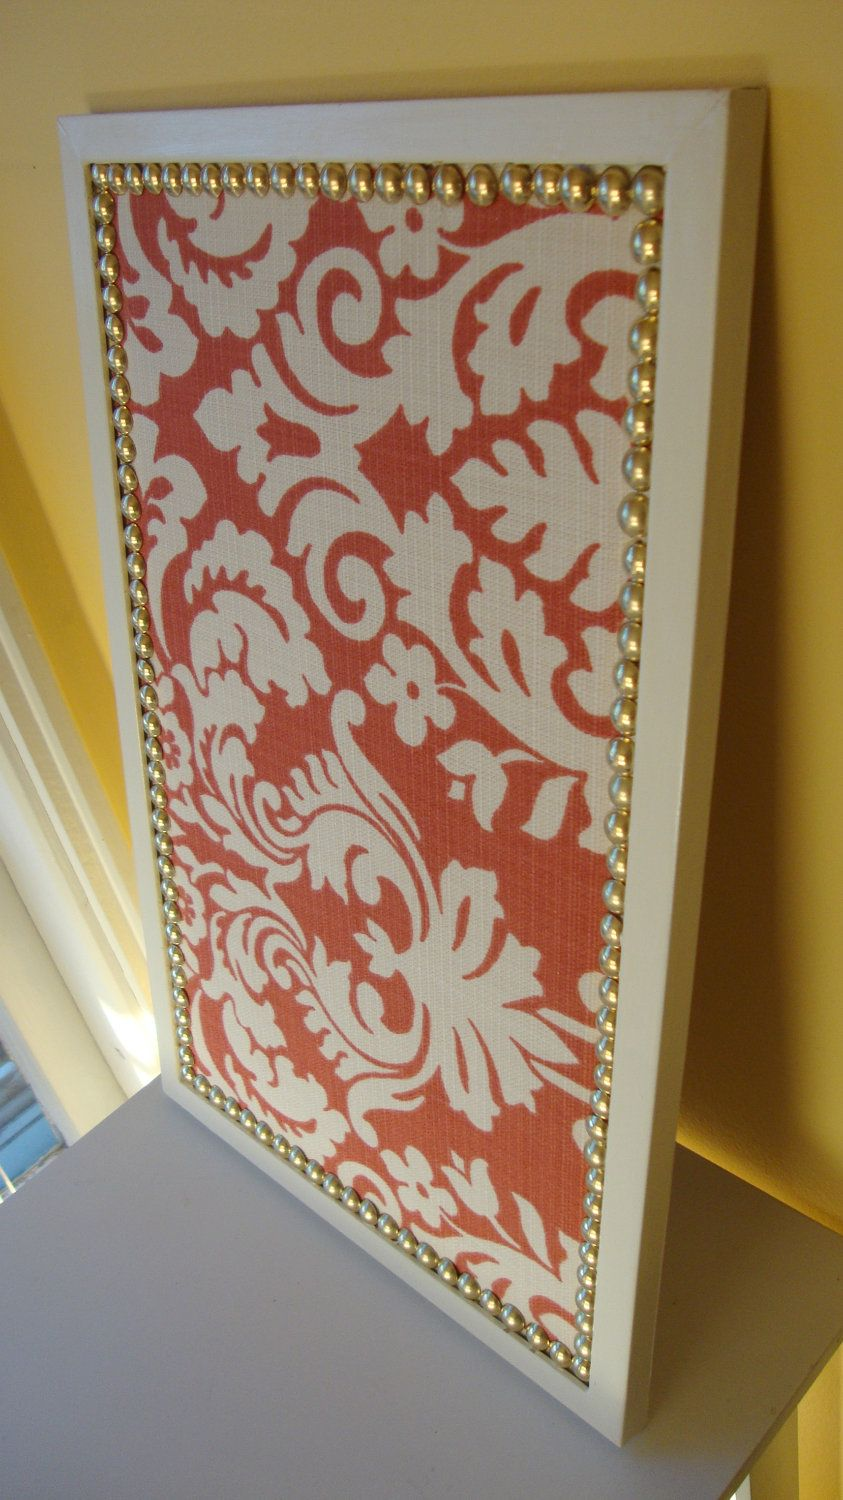 bulletin board can diy by framing a cork board using a stencil and spray decorative - Decorative Cork Boards